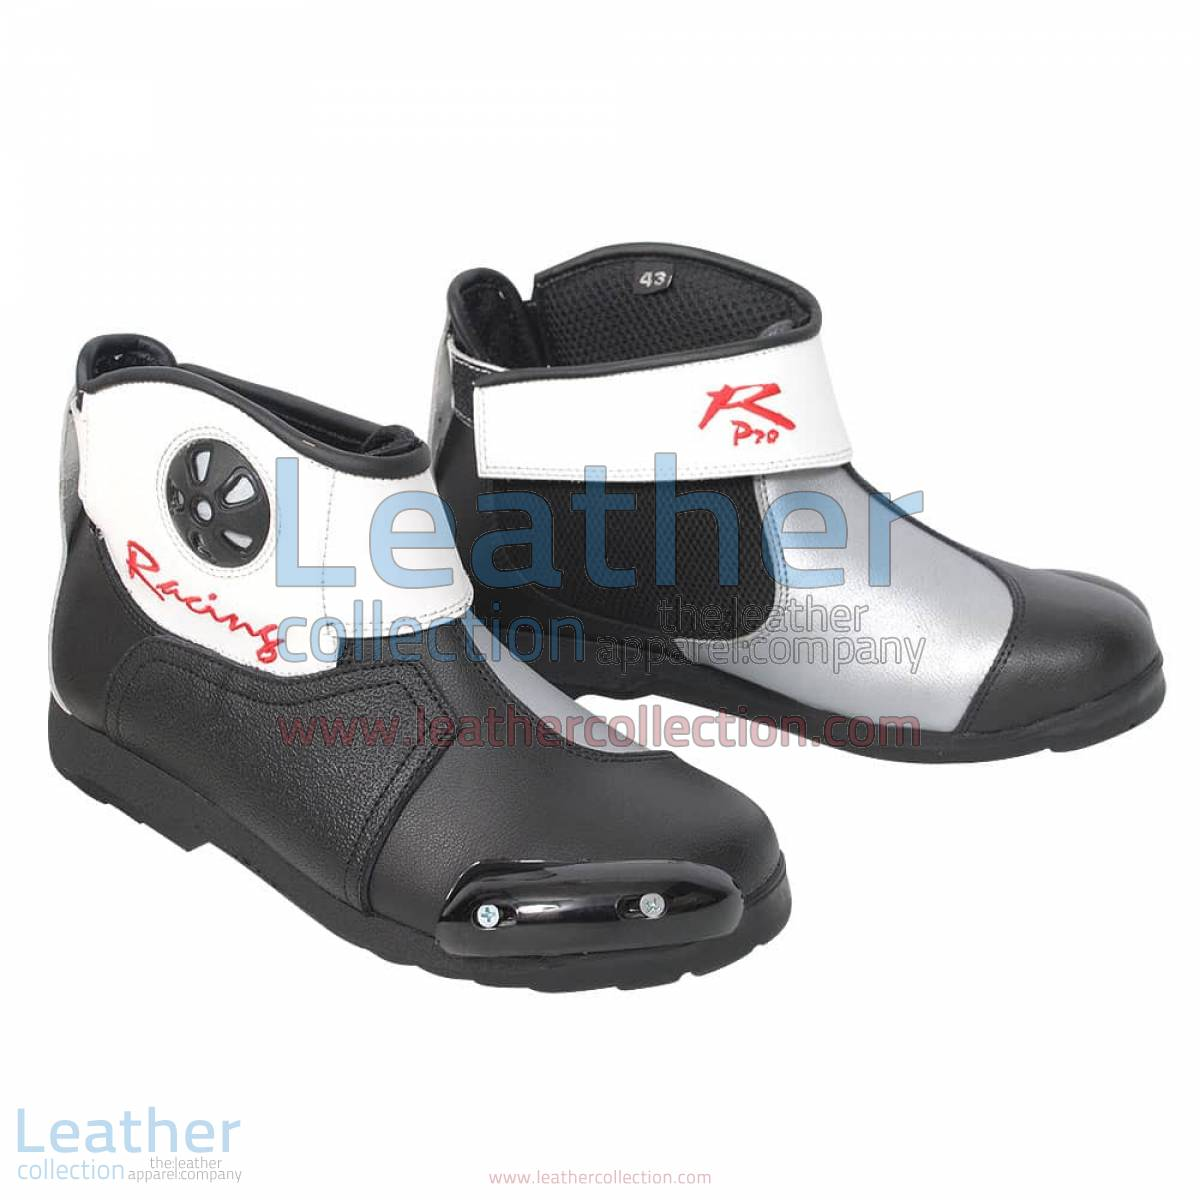 Vintage Leather Motorcycle Boots | leather motorcycle boots